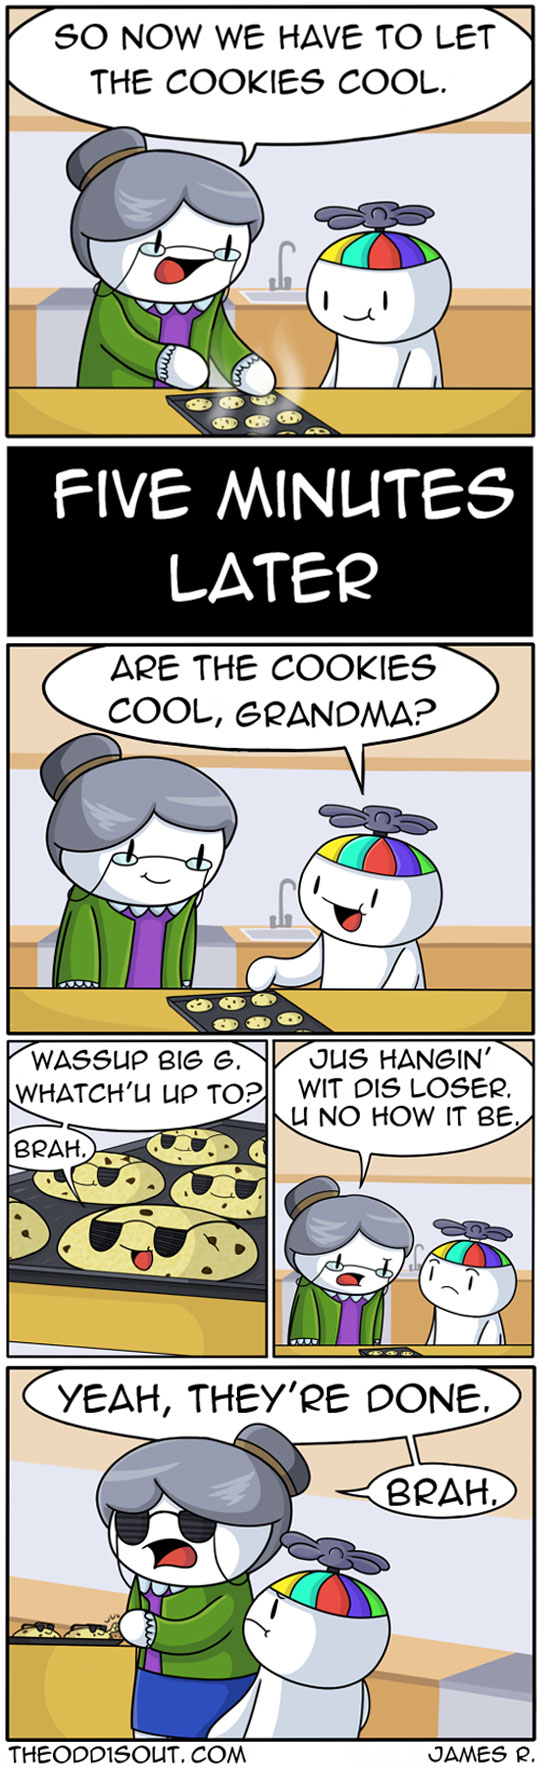 funny-grandmother-cool-cookies-cooking